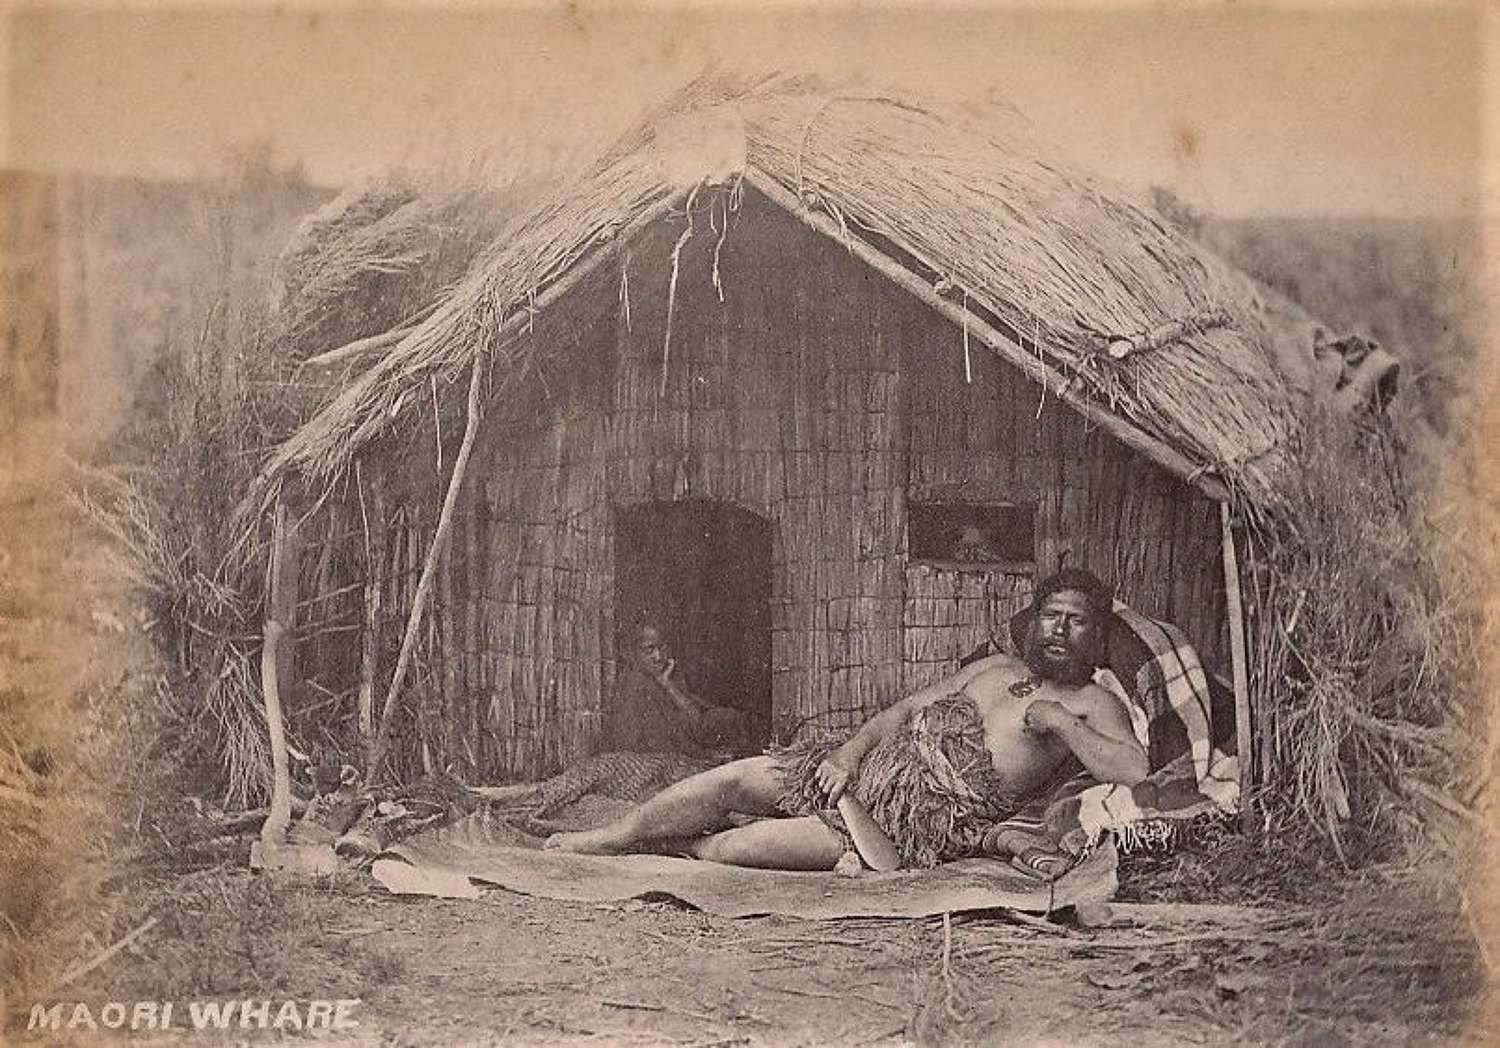 Maori with Patu New Zealand C1885